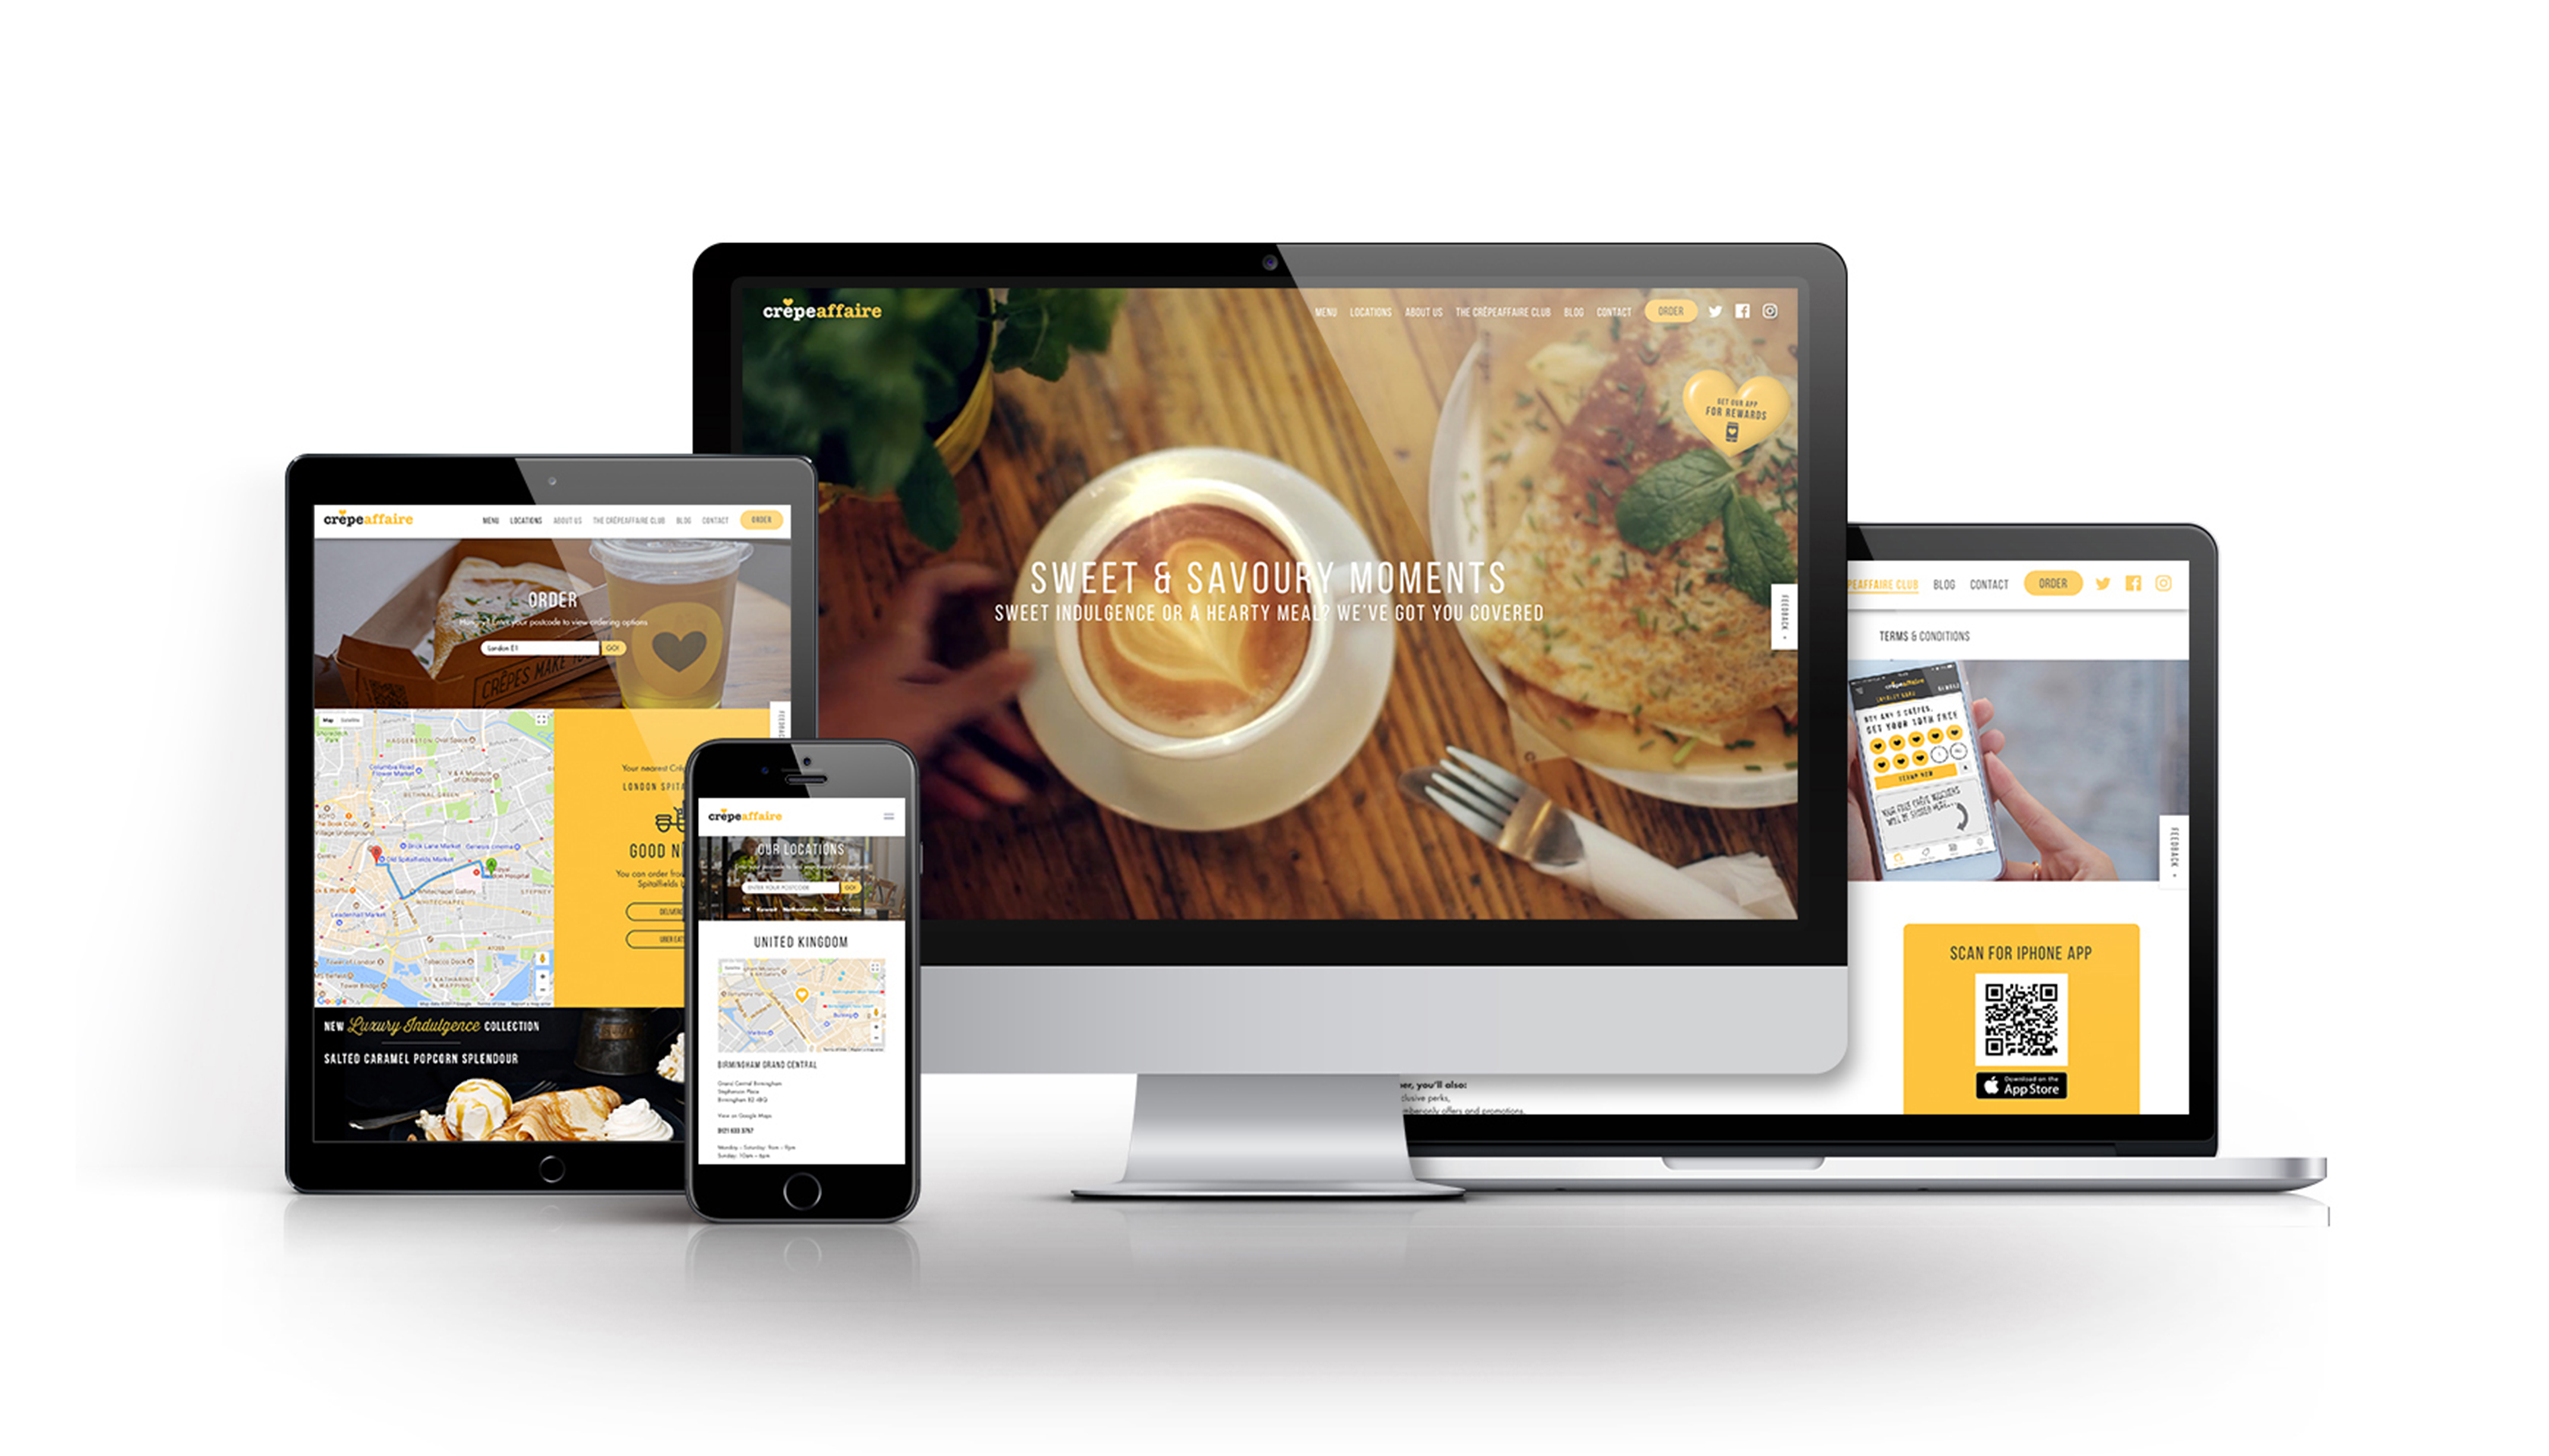 New website launch for Crêpeaffaire